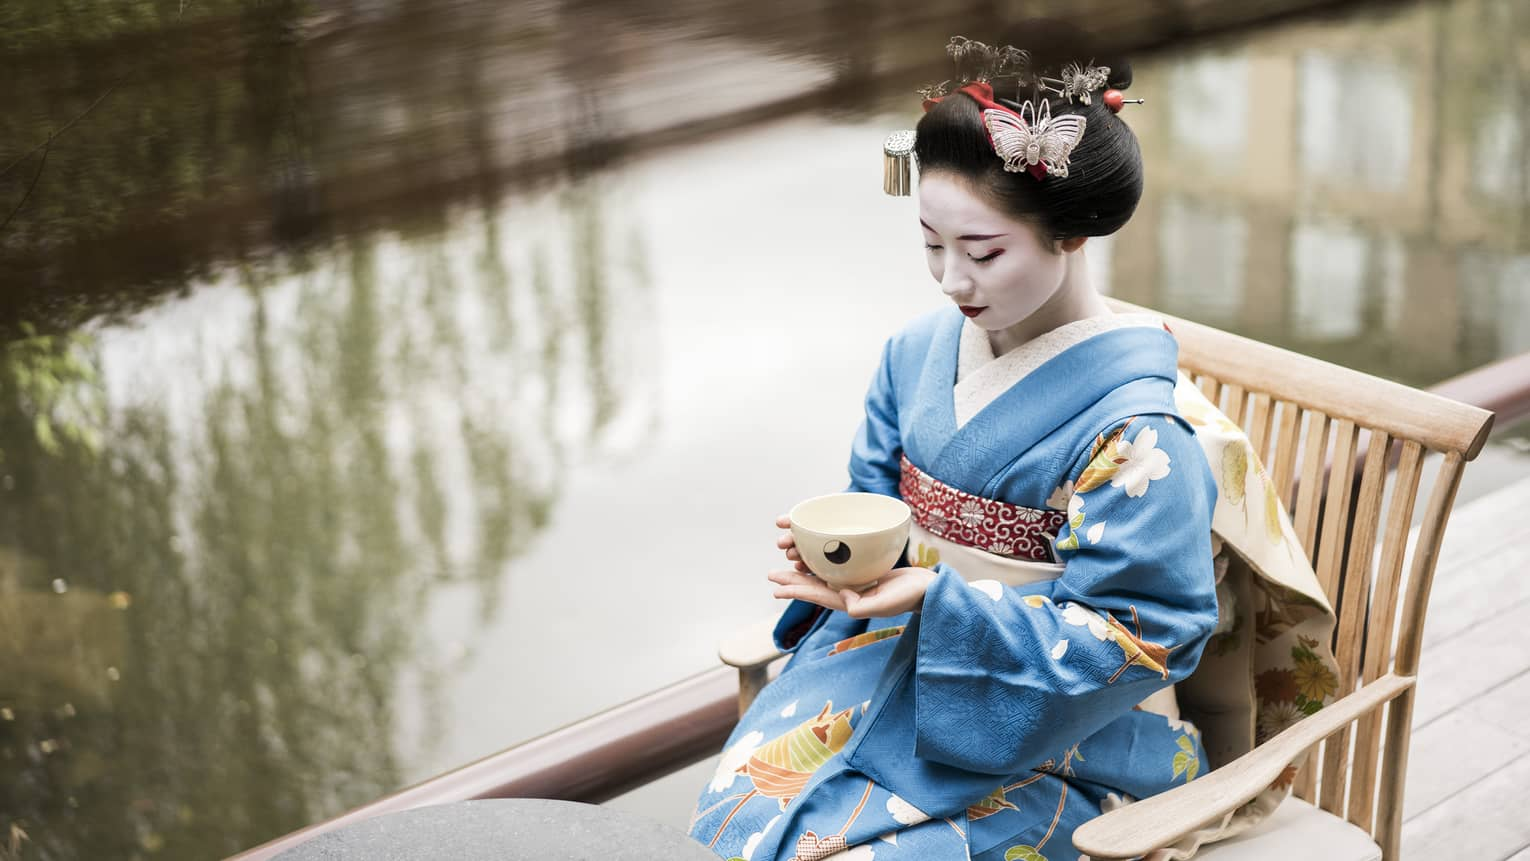 Geisha wearing traditional kimono robe, makeup sits on wood chair, holds tea cup